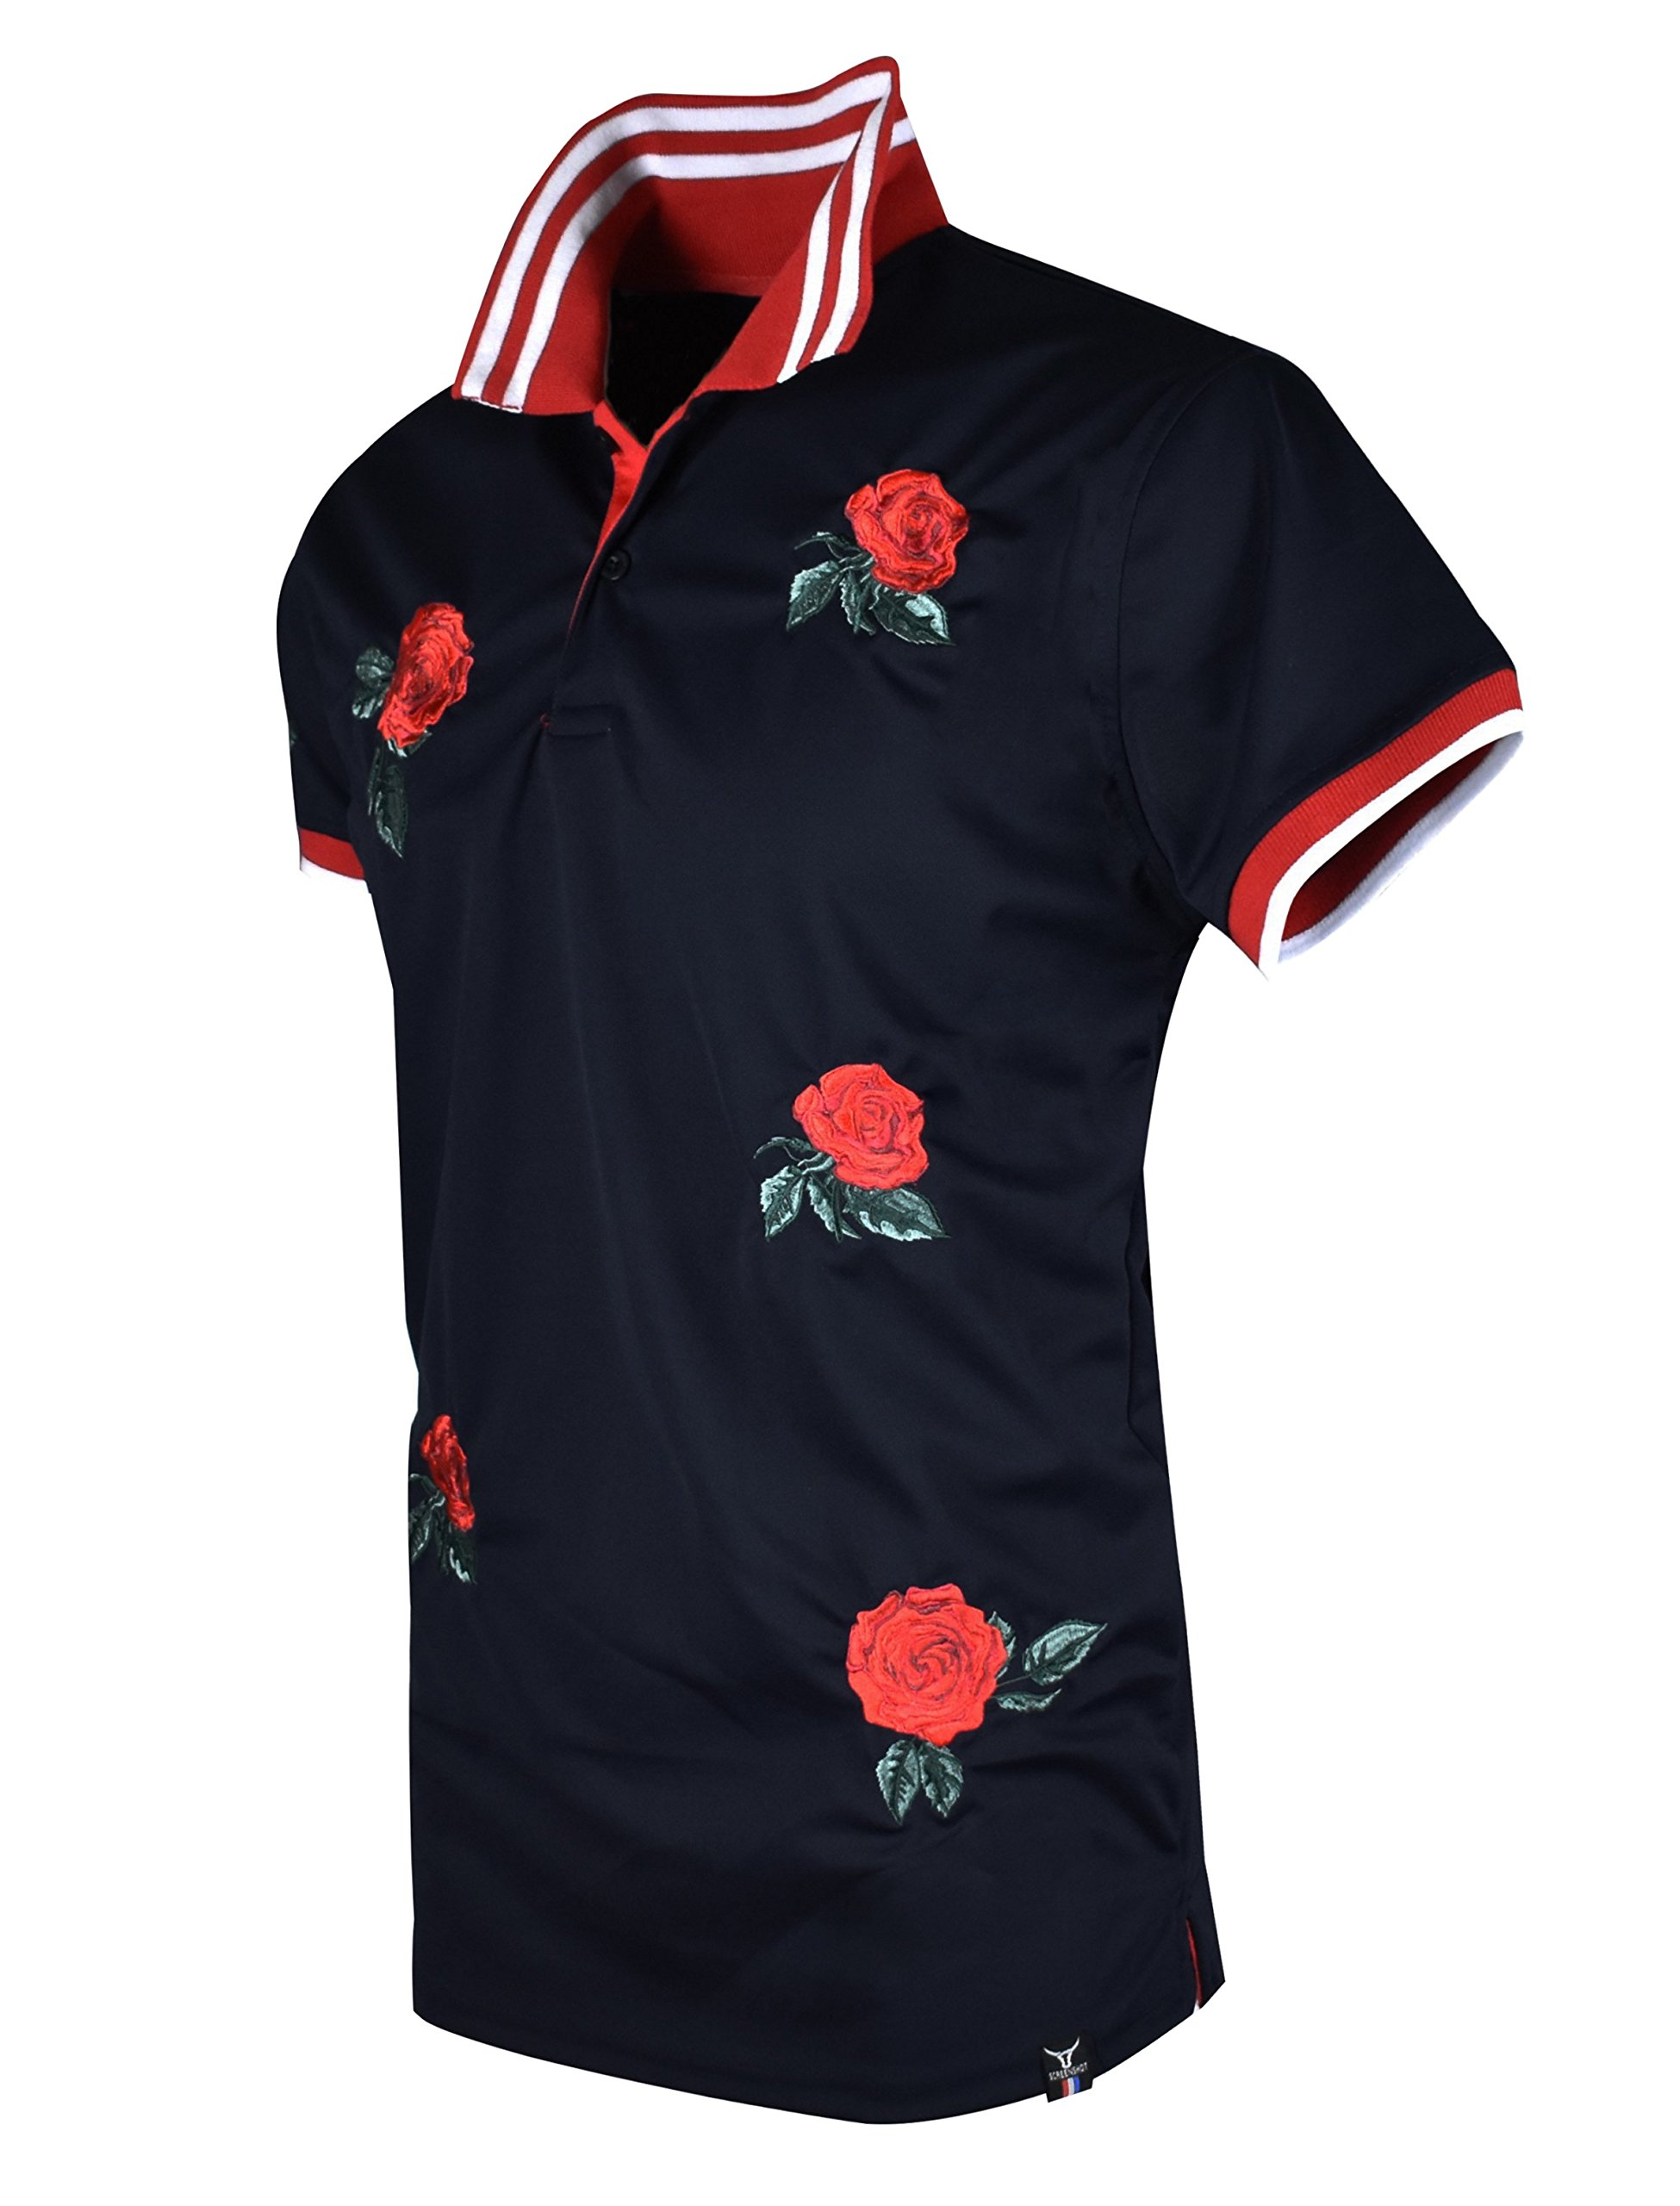 SCREENSHOTBRAND-S11815 Mens Hipster Hip-Hop Premium Tees - Stylish Fashion Rose Flower Embroidery Polo T-Shirt - Black-Medium